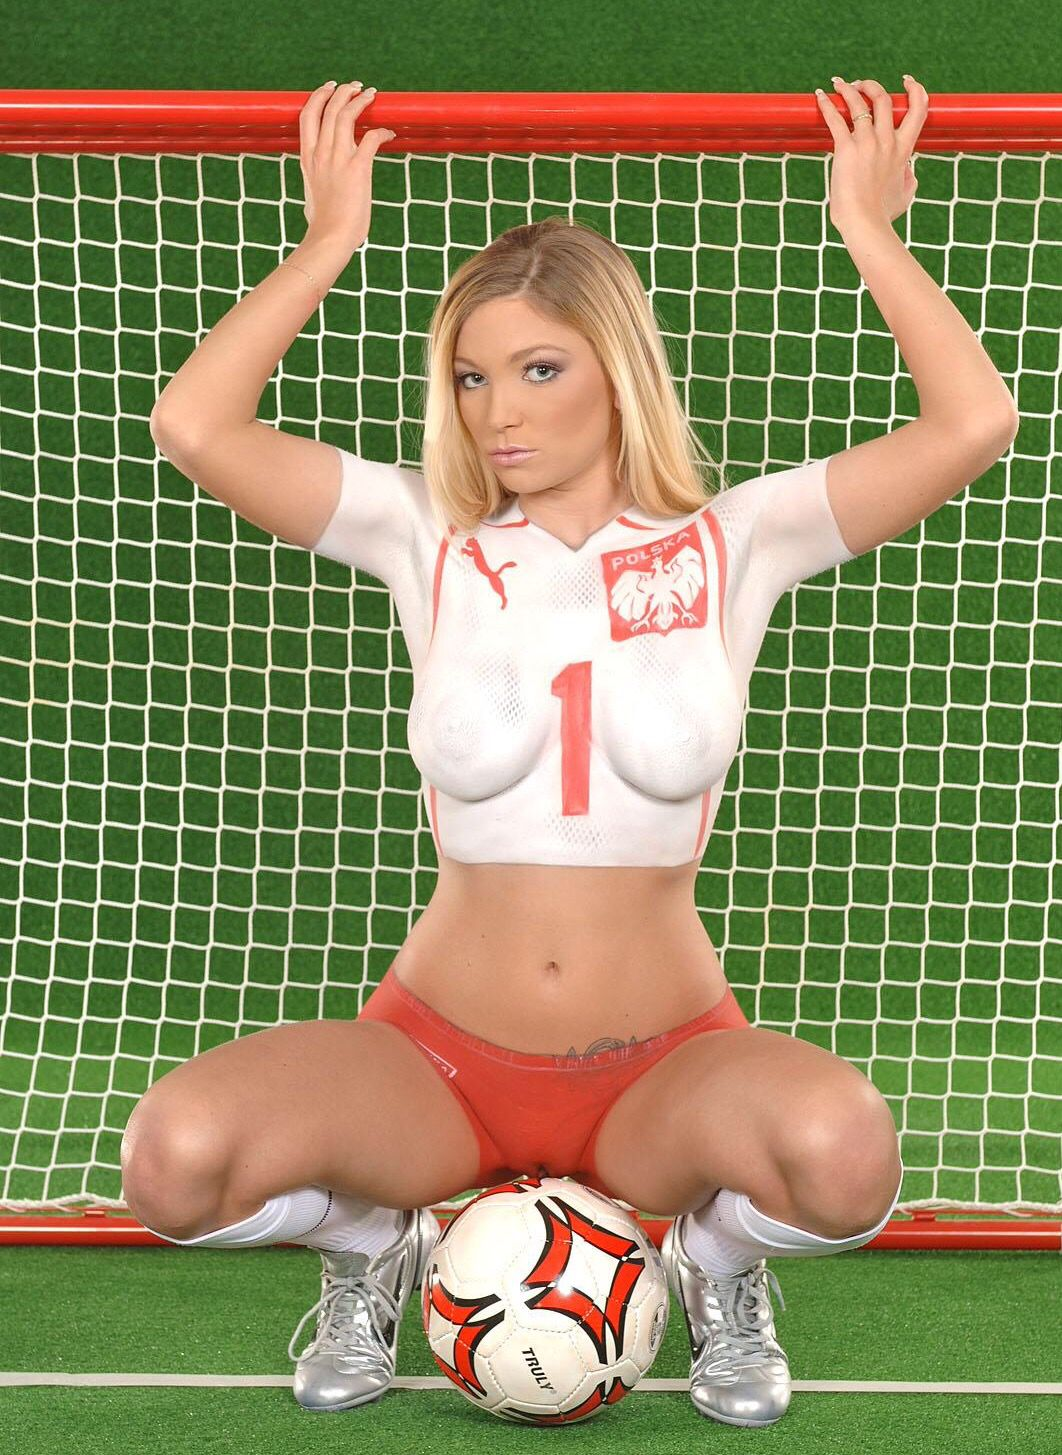 Hot painted fifa girls in body